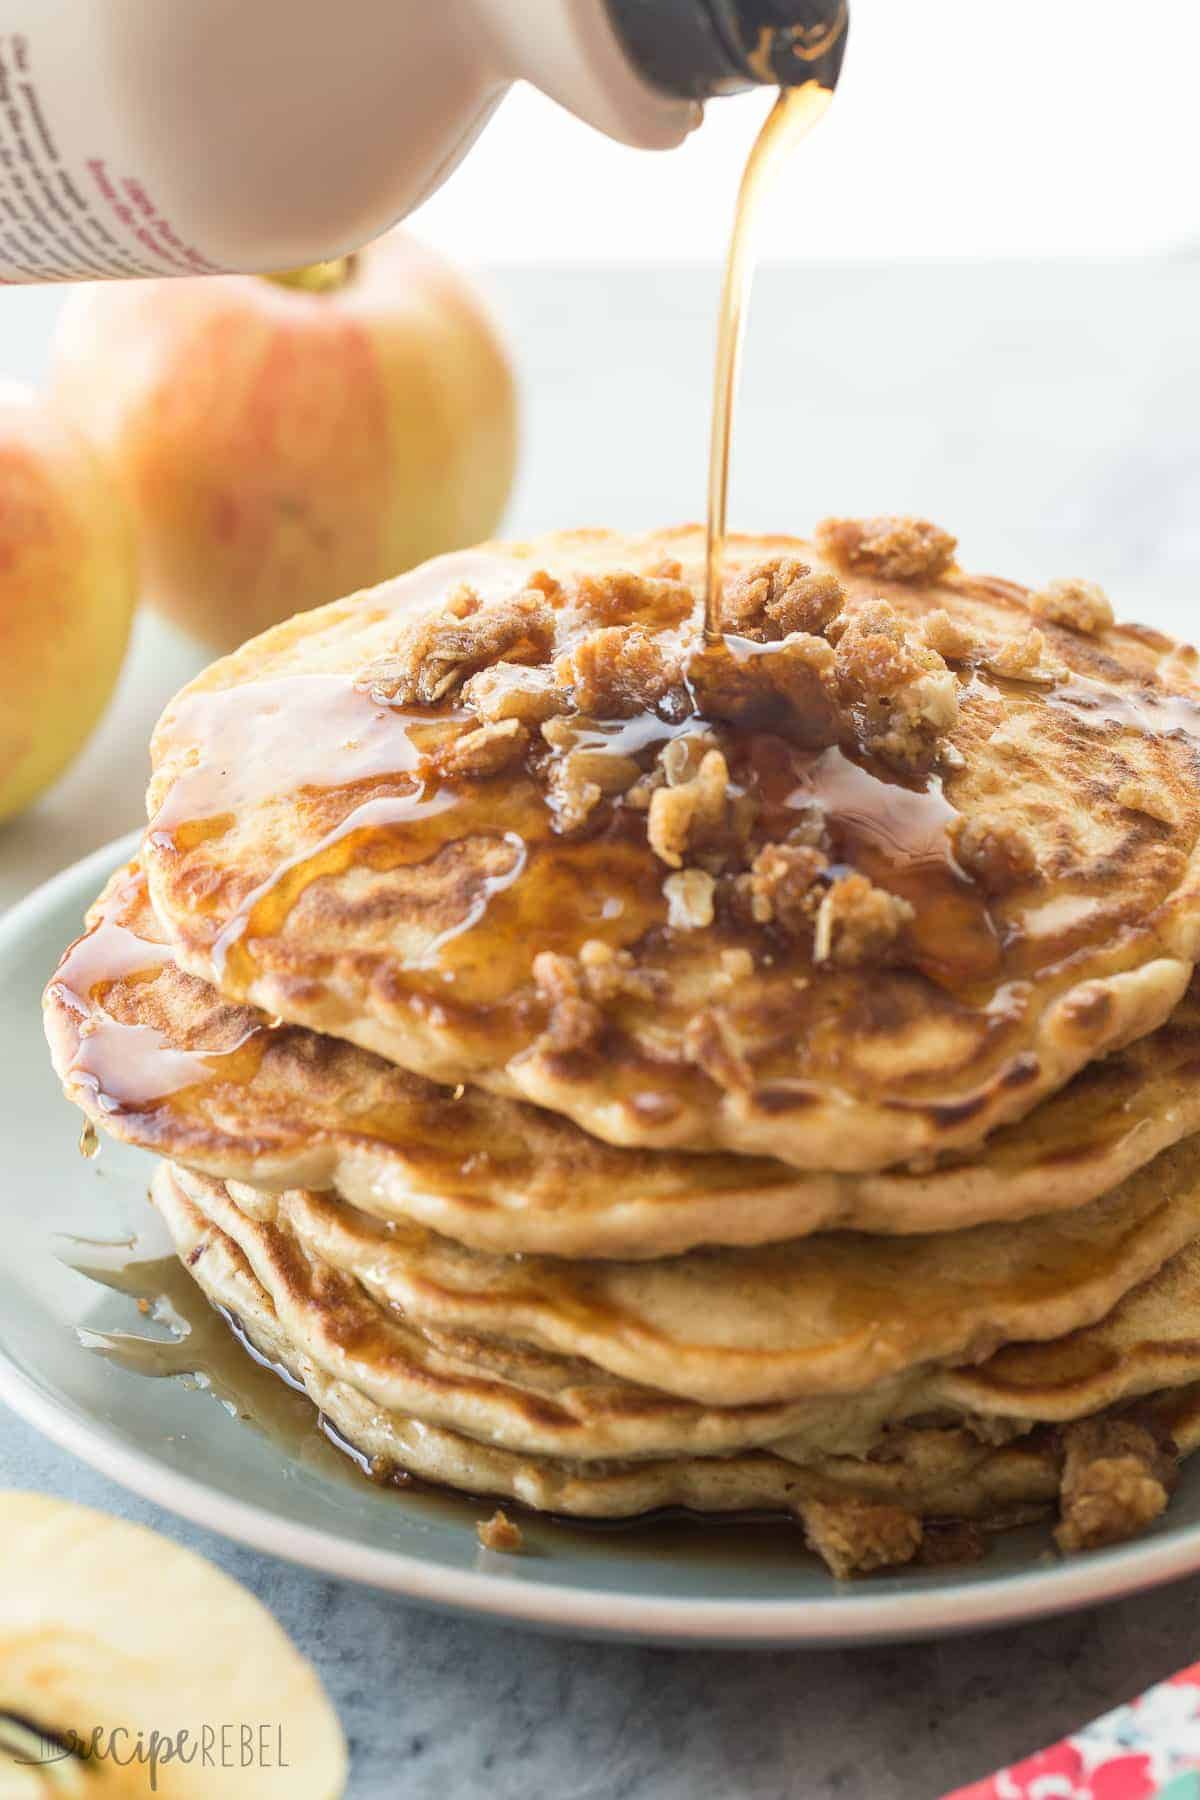 stack of pancakes with streusel crumbles on down and drizzle of syrup